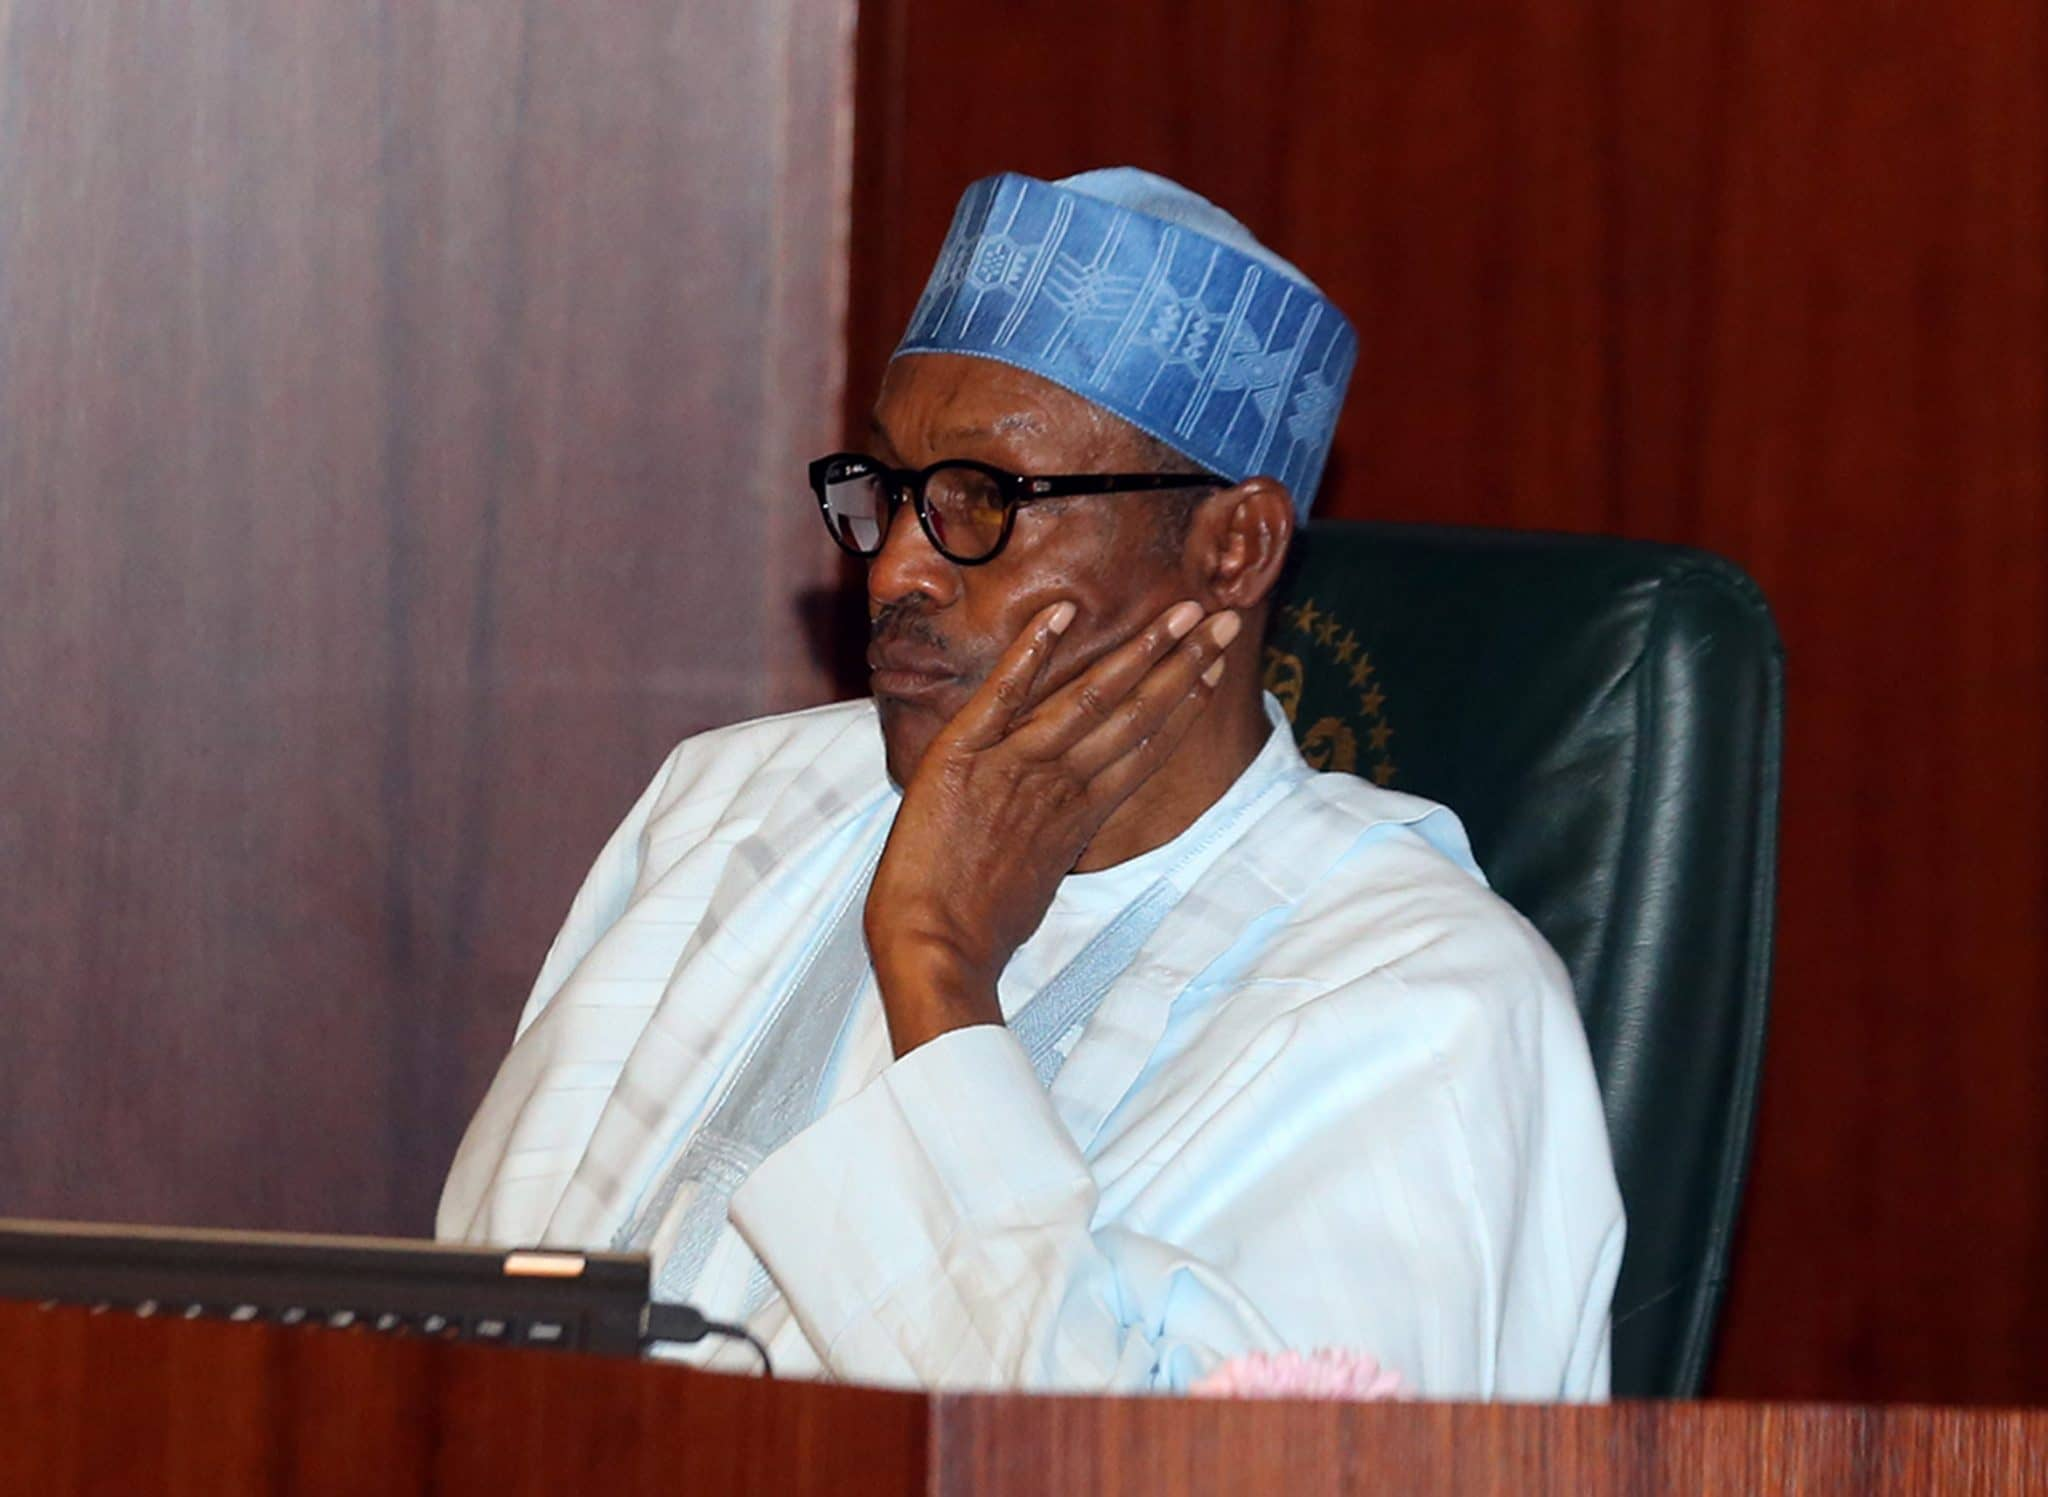 FG Blasted For Begging Billionaire For Ventilators